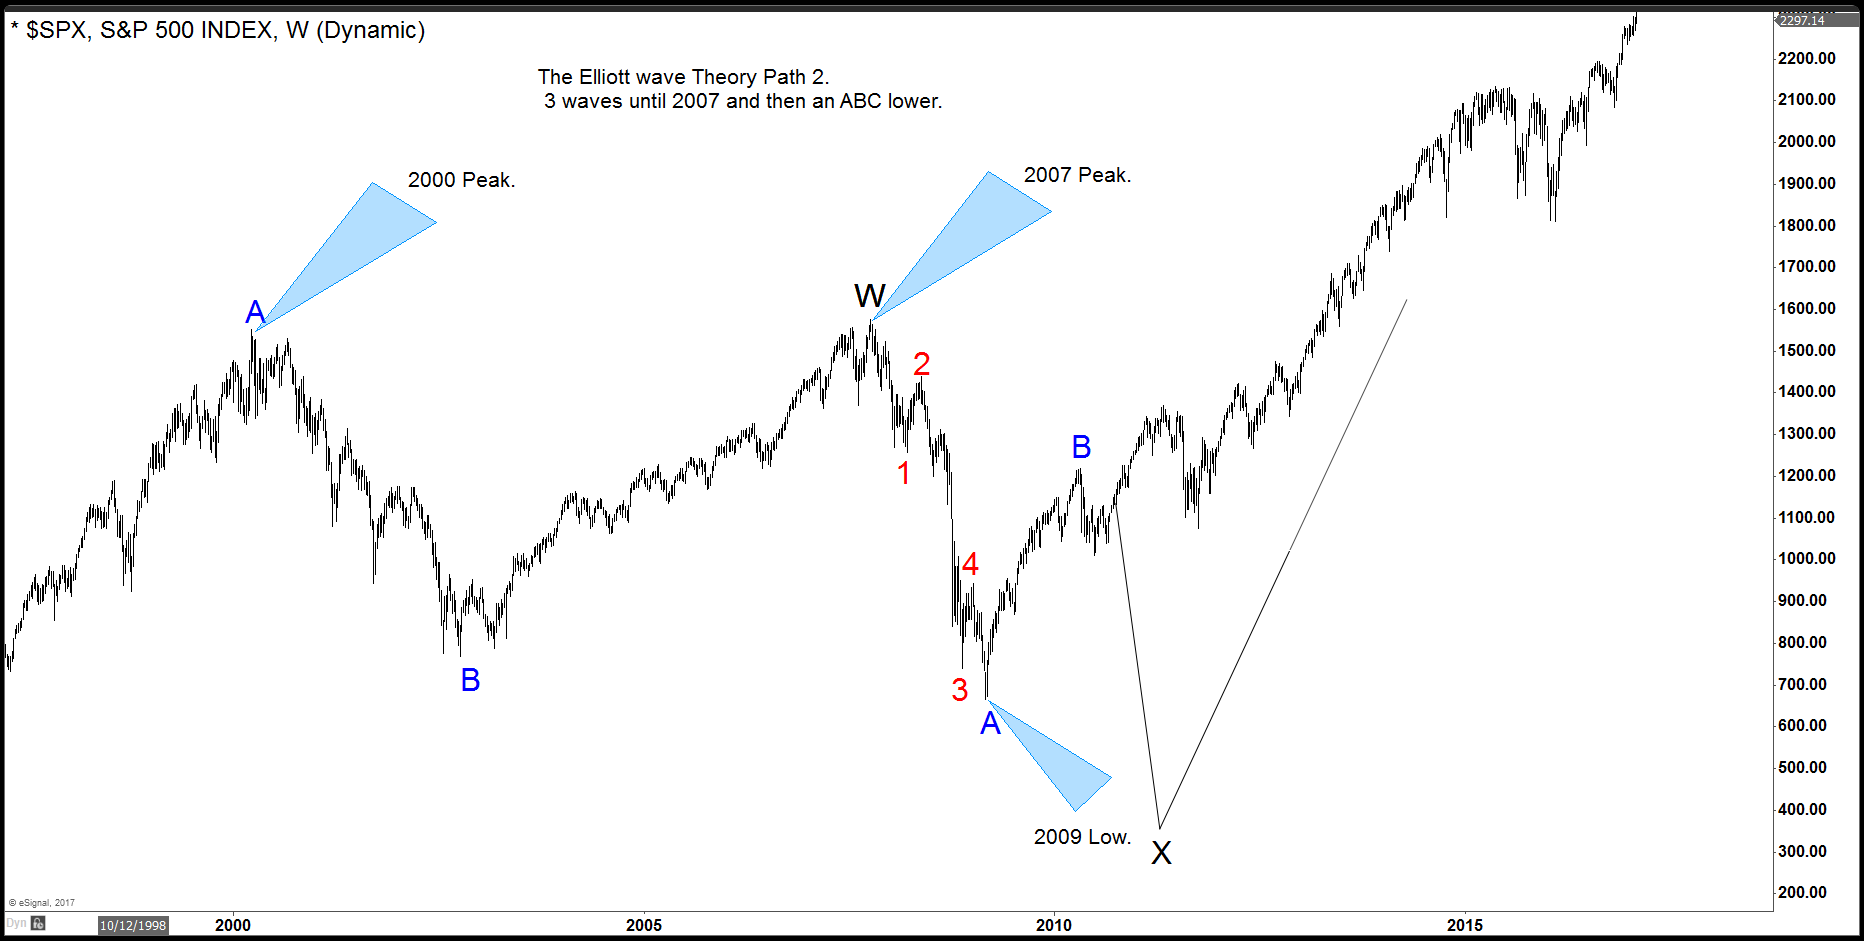 SPX Chart 3 for Elliott's Theory Blog